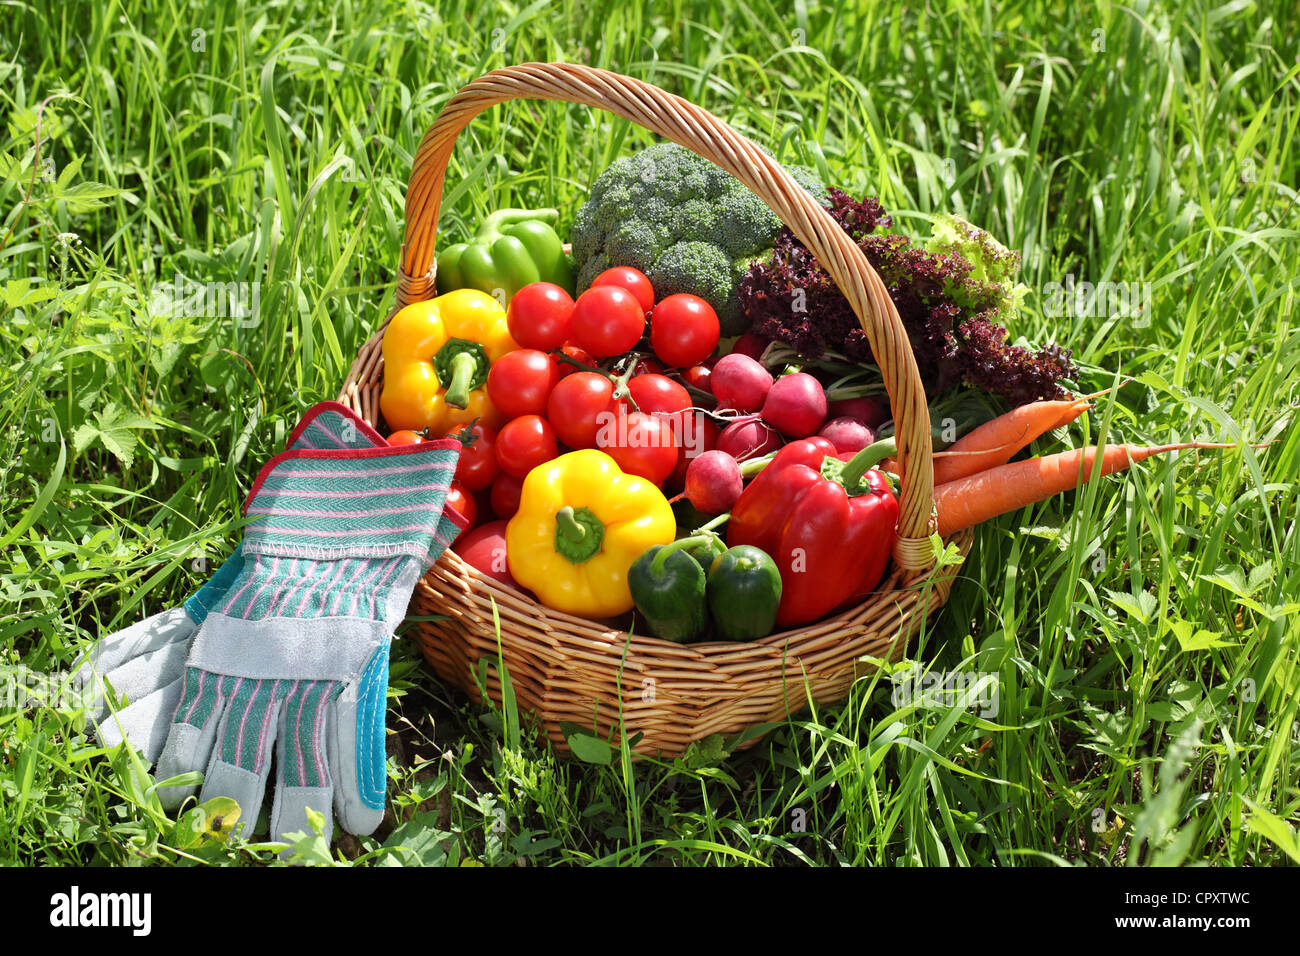 Basket full of organic vegetables with glove on green grass. - Stock Image